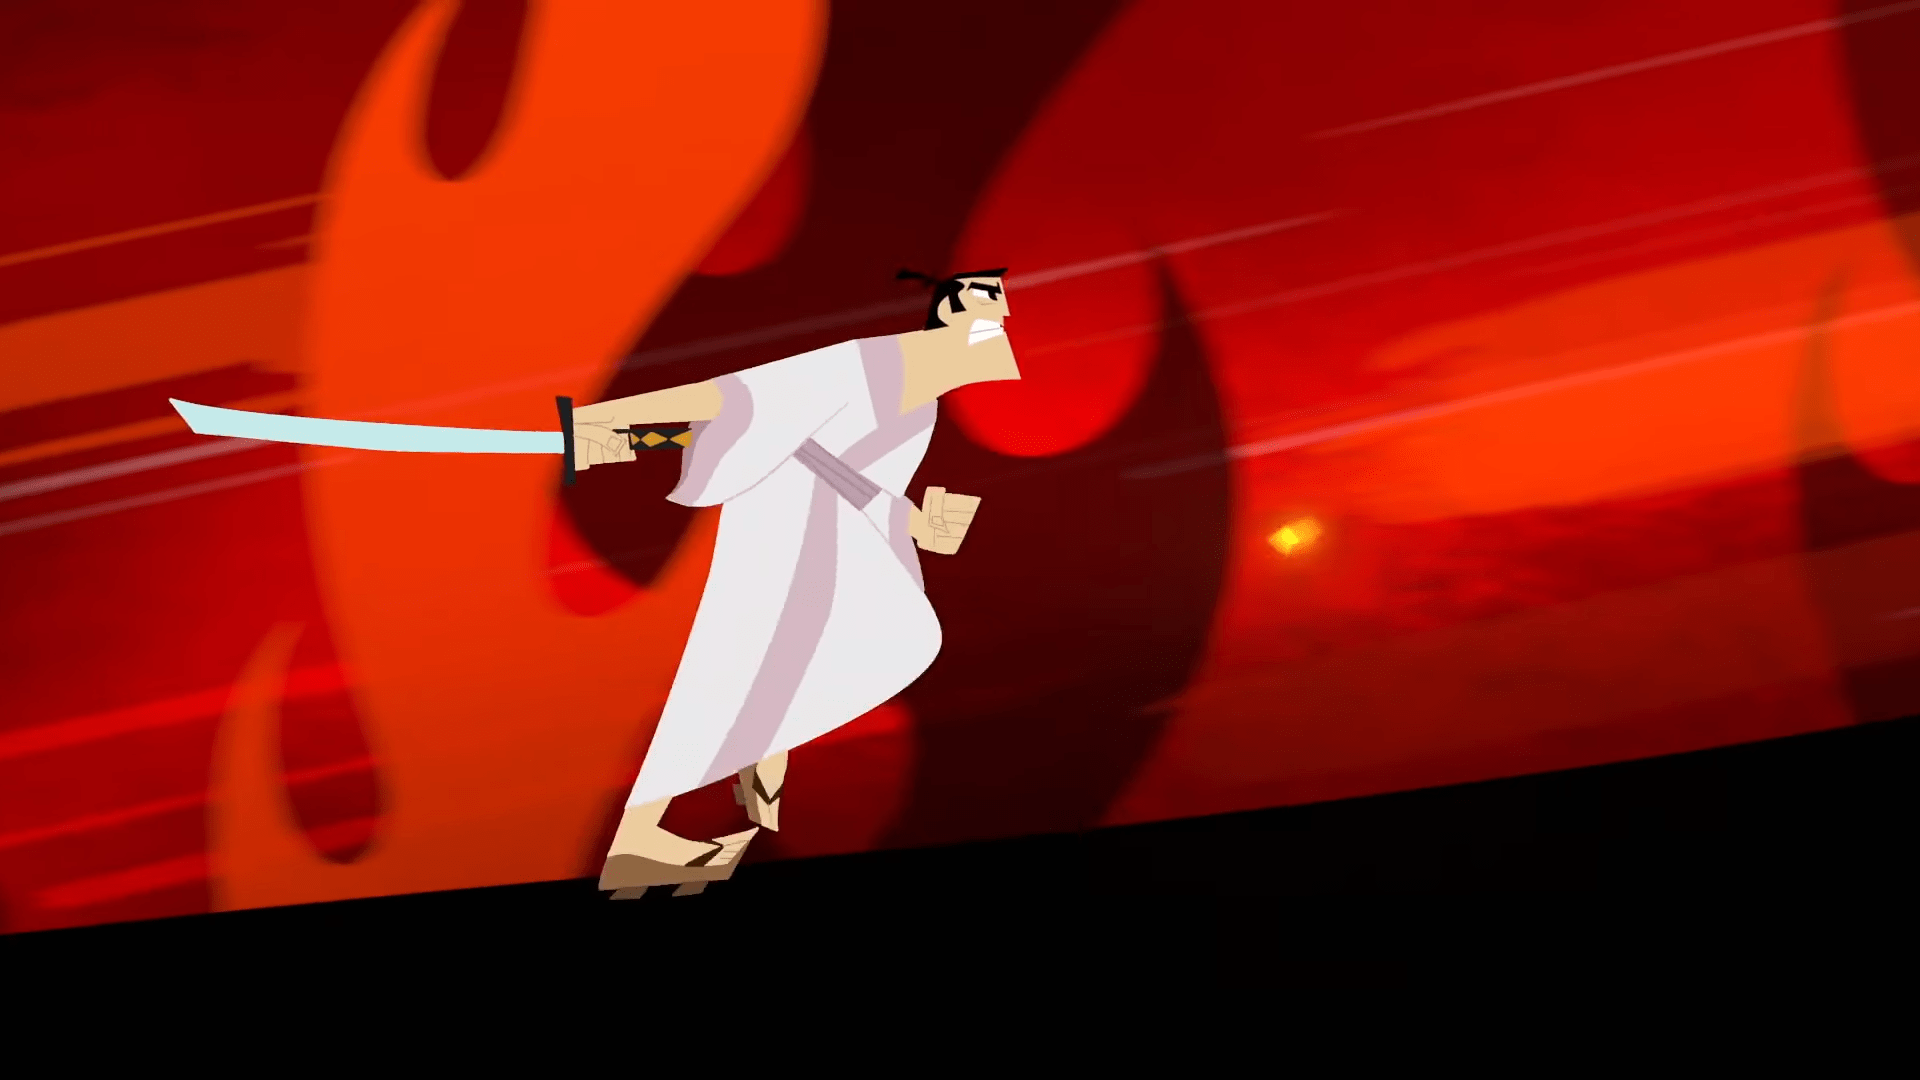 A Samurai Jack Game Has Just Been Announced With Adult Swim Games At The Helm